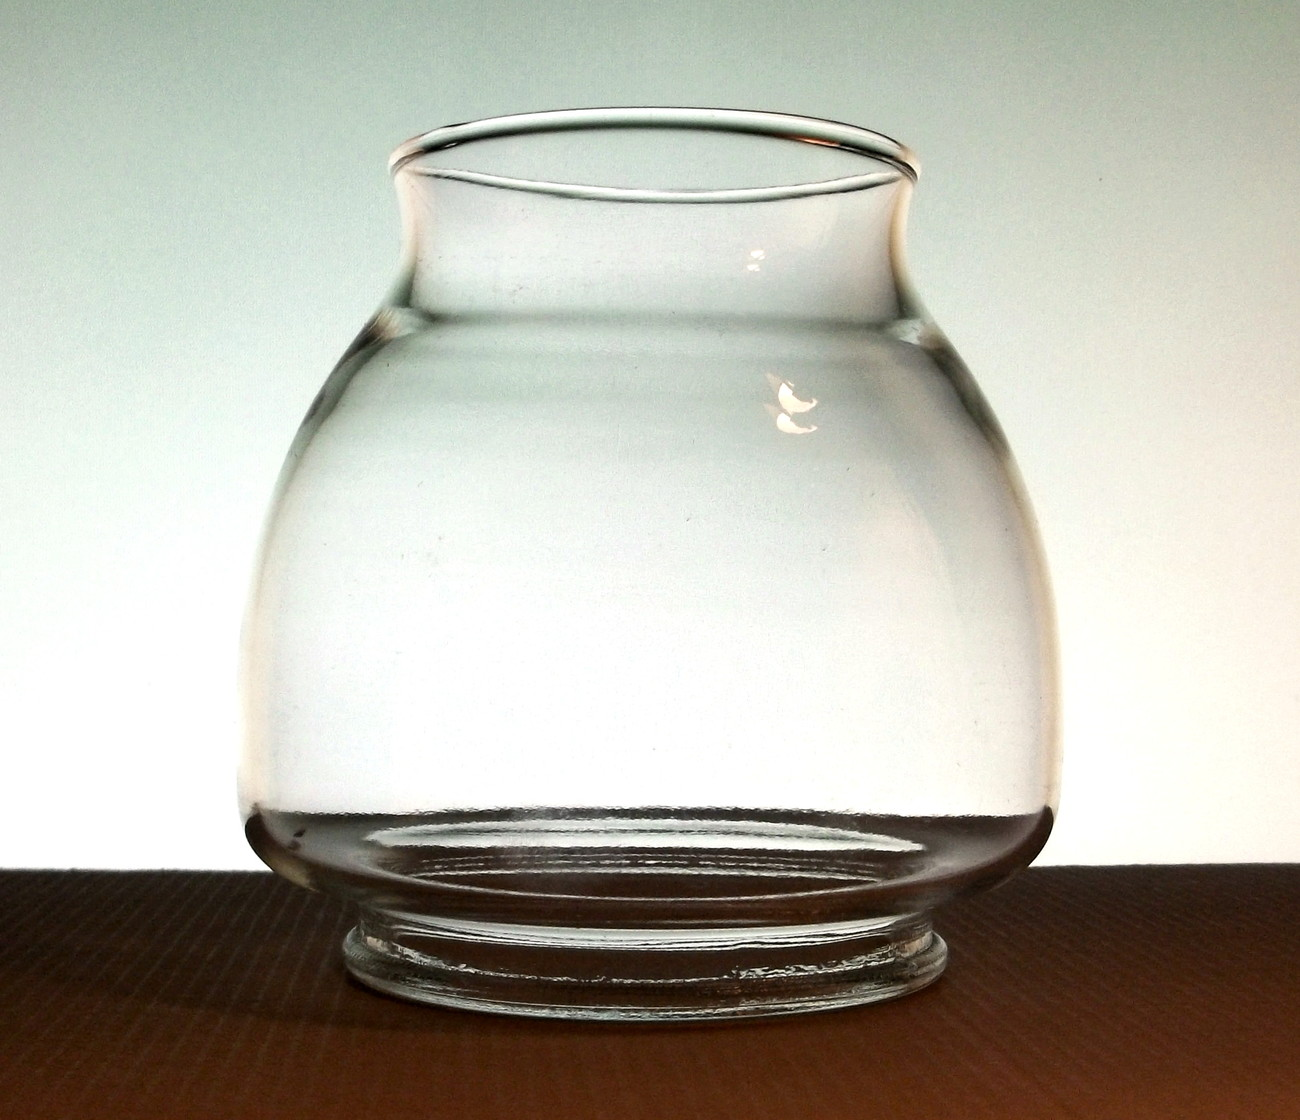 Hurricane Glass Lamp Shade Ginger Bowl 3.25 inch fitter x 4.5